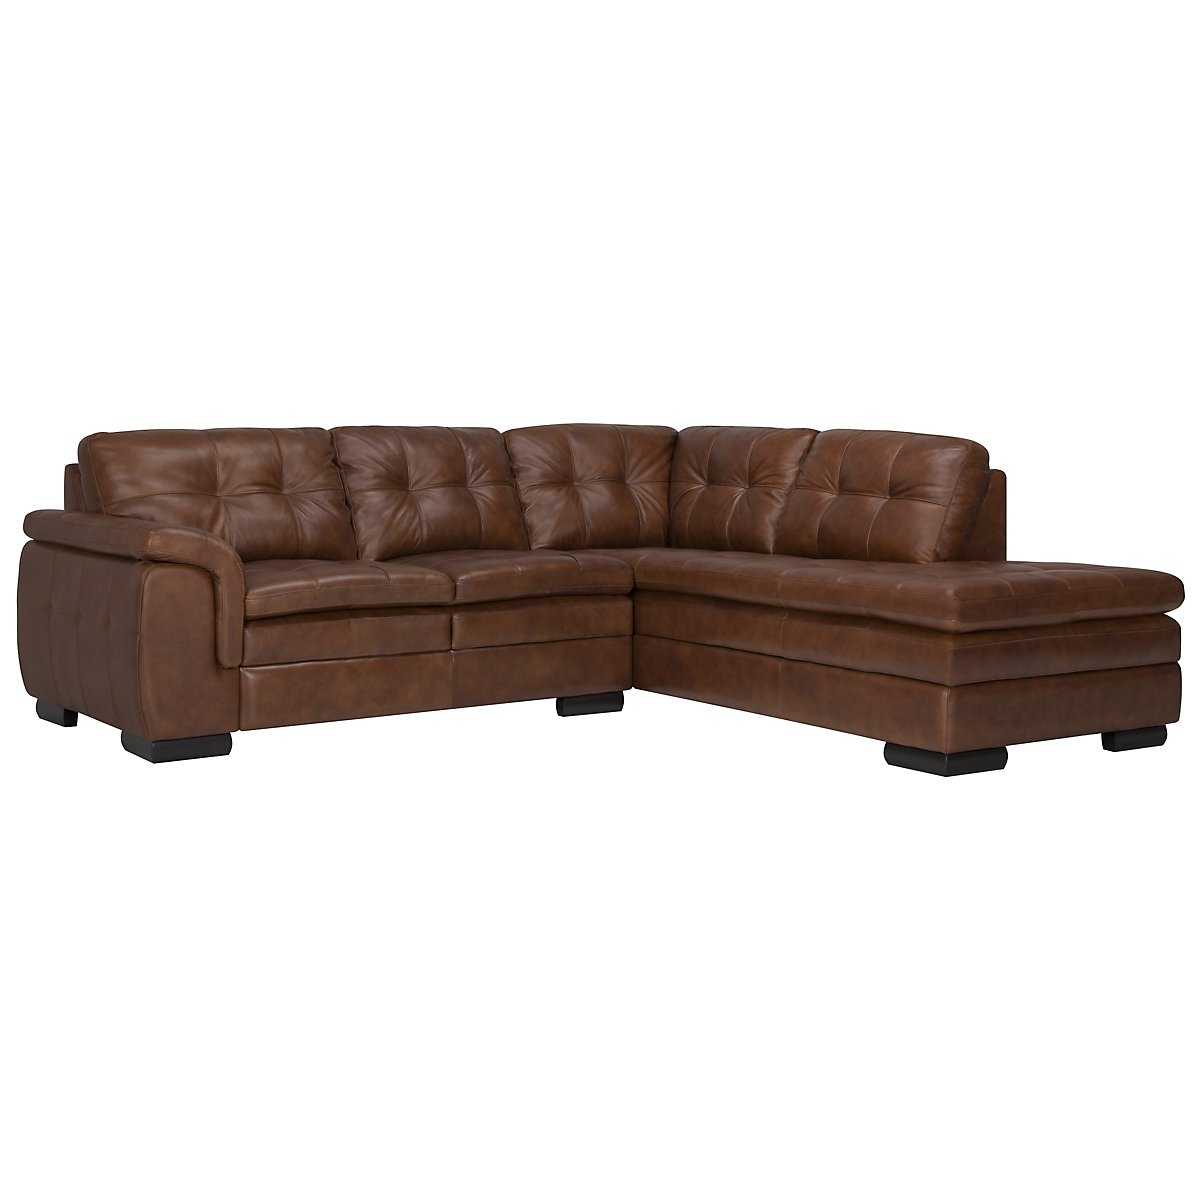 Trevor Md Brown Leather Small Right Bumper Sectional